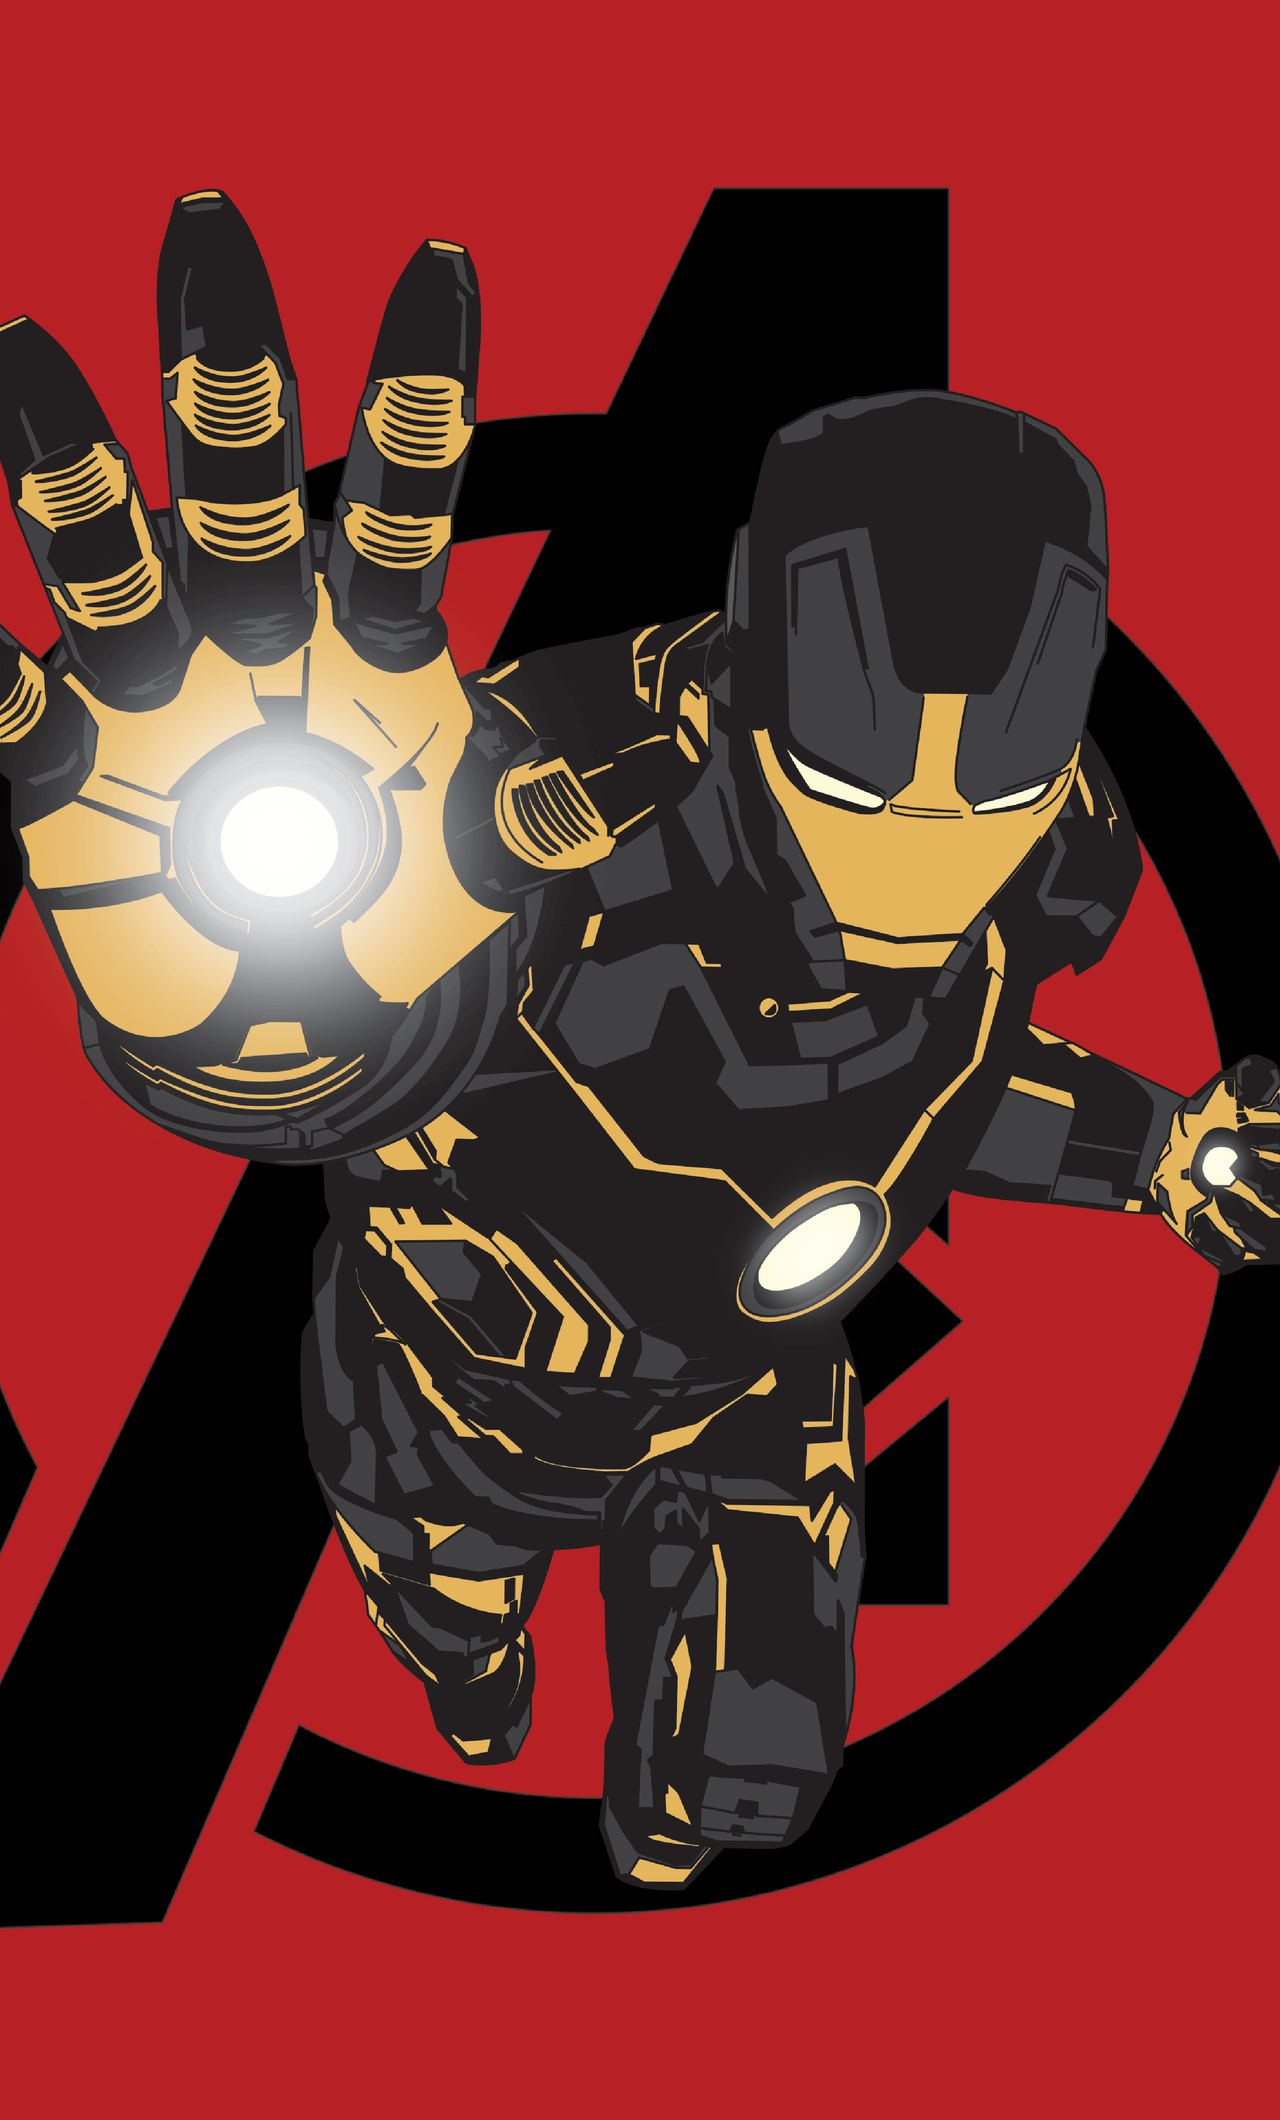 1280x2120 Iron Man Black X Gold Iphone 6 Hd 4k Wallpapers Images